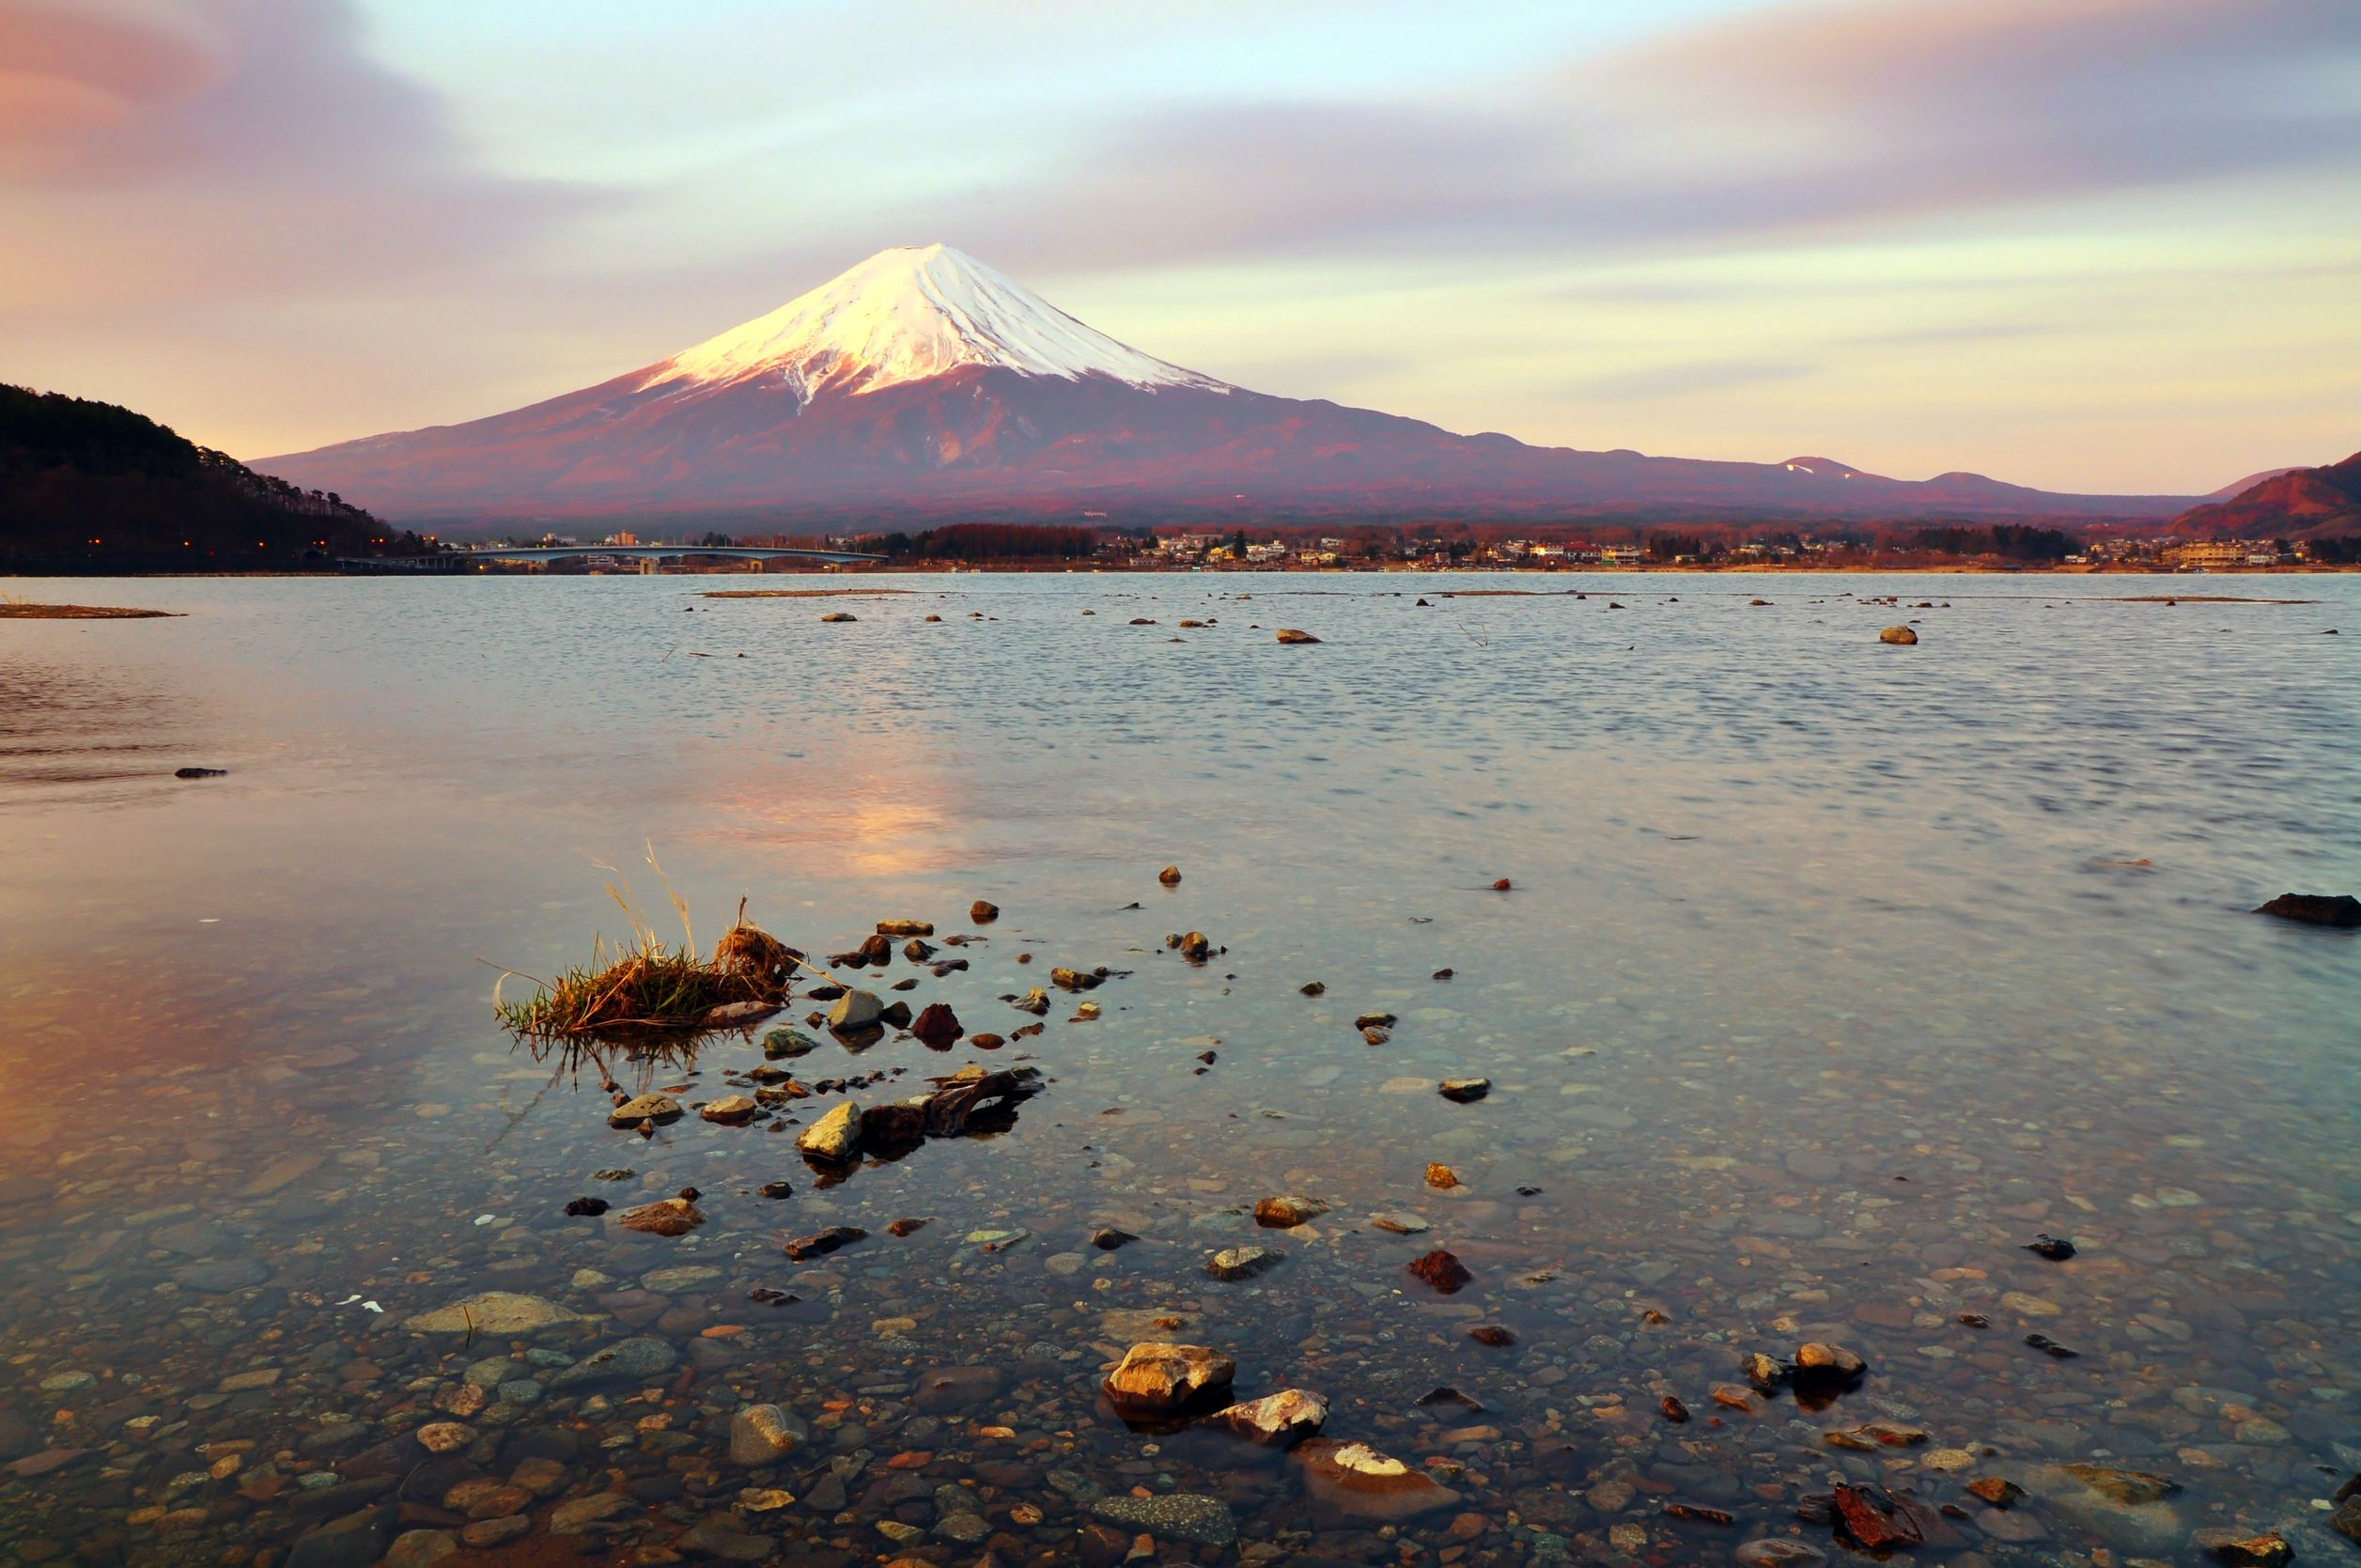 Good morning Fuji